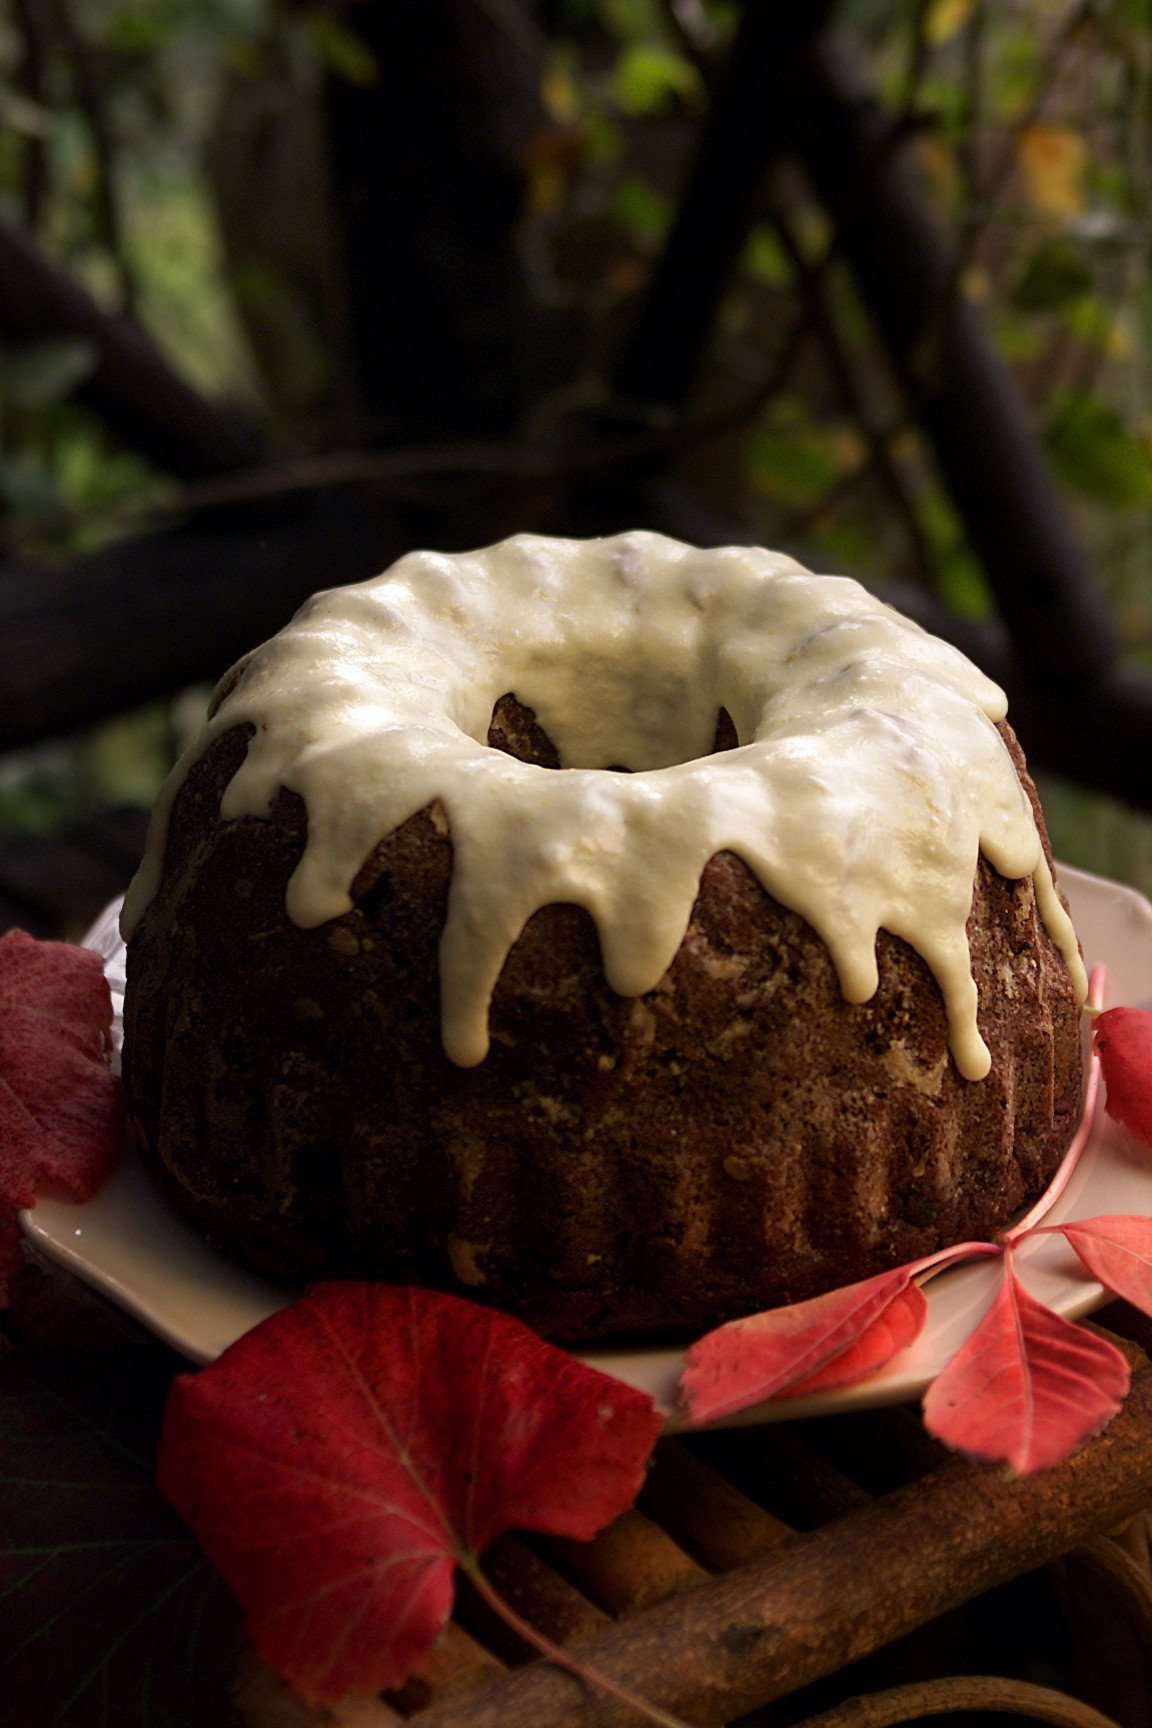 Photos: 97 great Thanksgiving recipes - Persimmon cake with rum orange icing